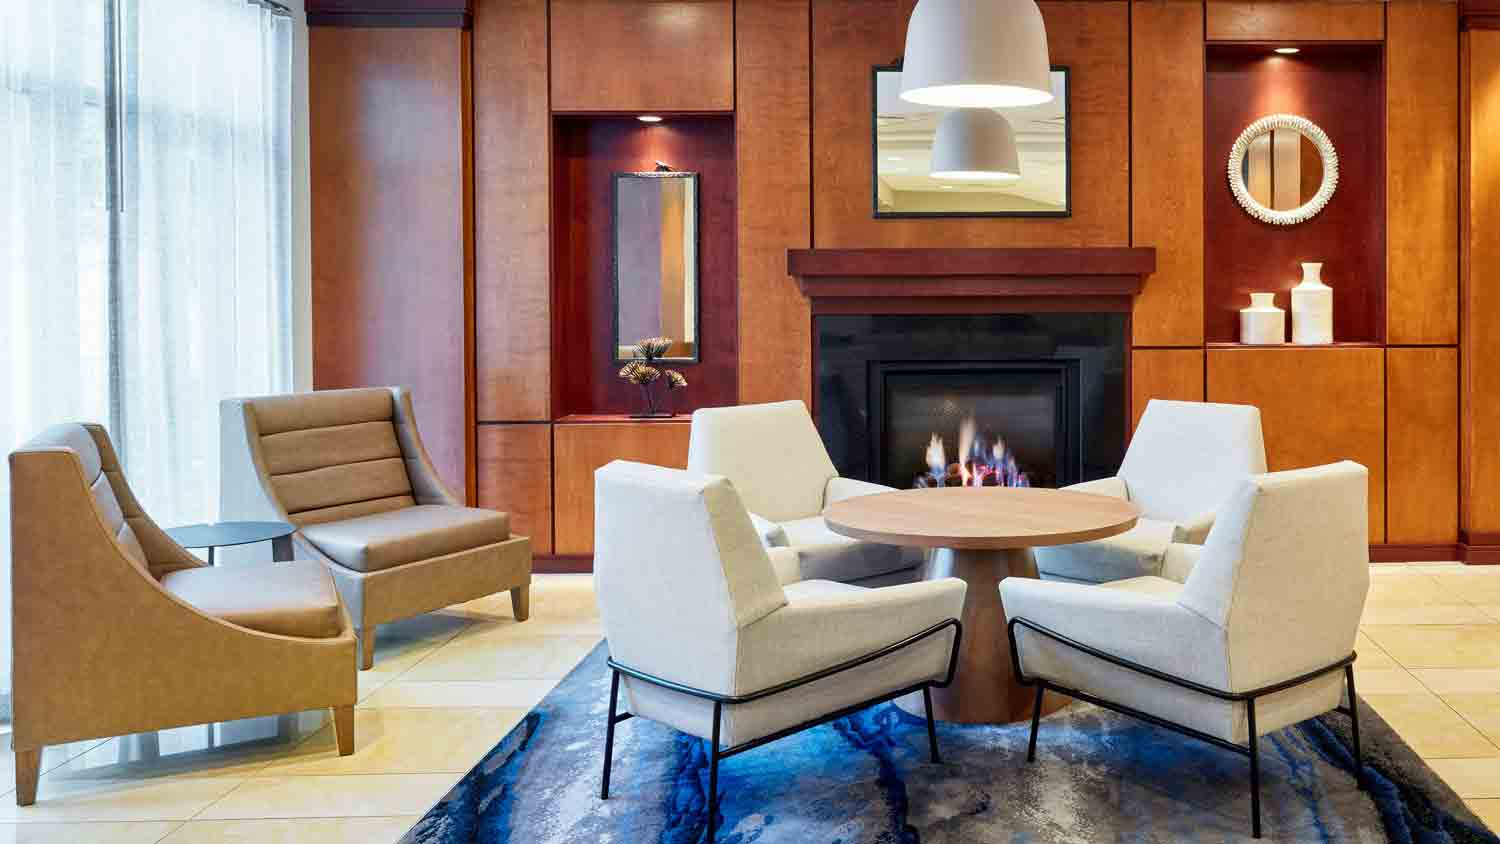 Fairfield Inn & Suites by Marriott Downtown Indianapolis 10